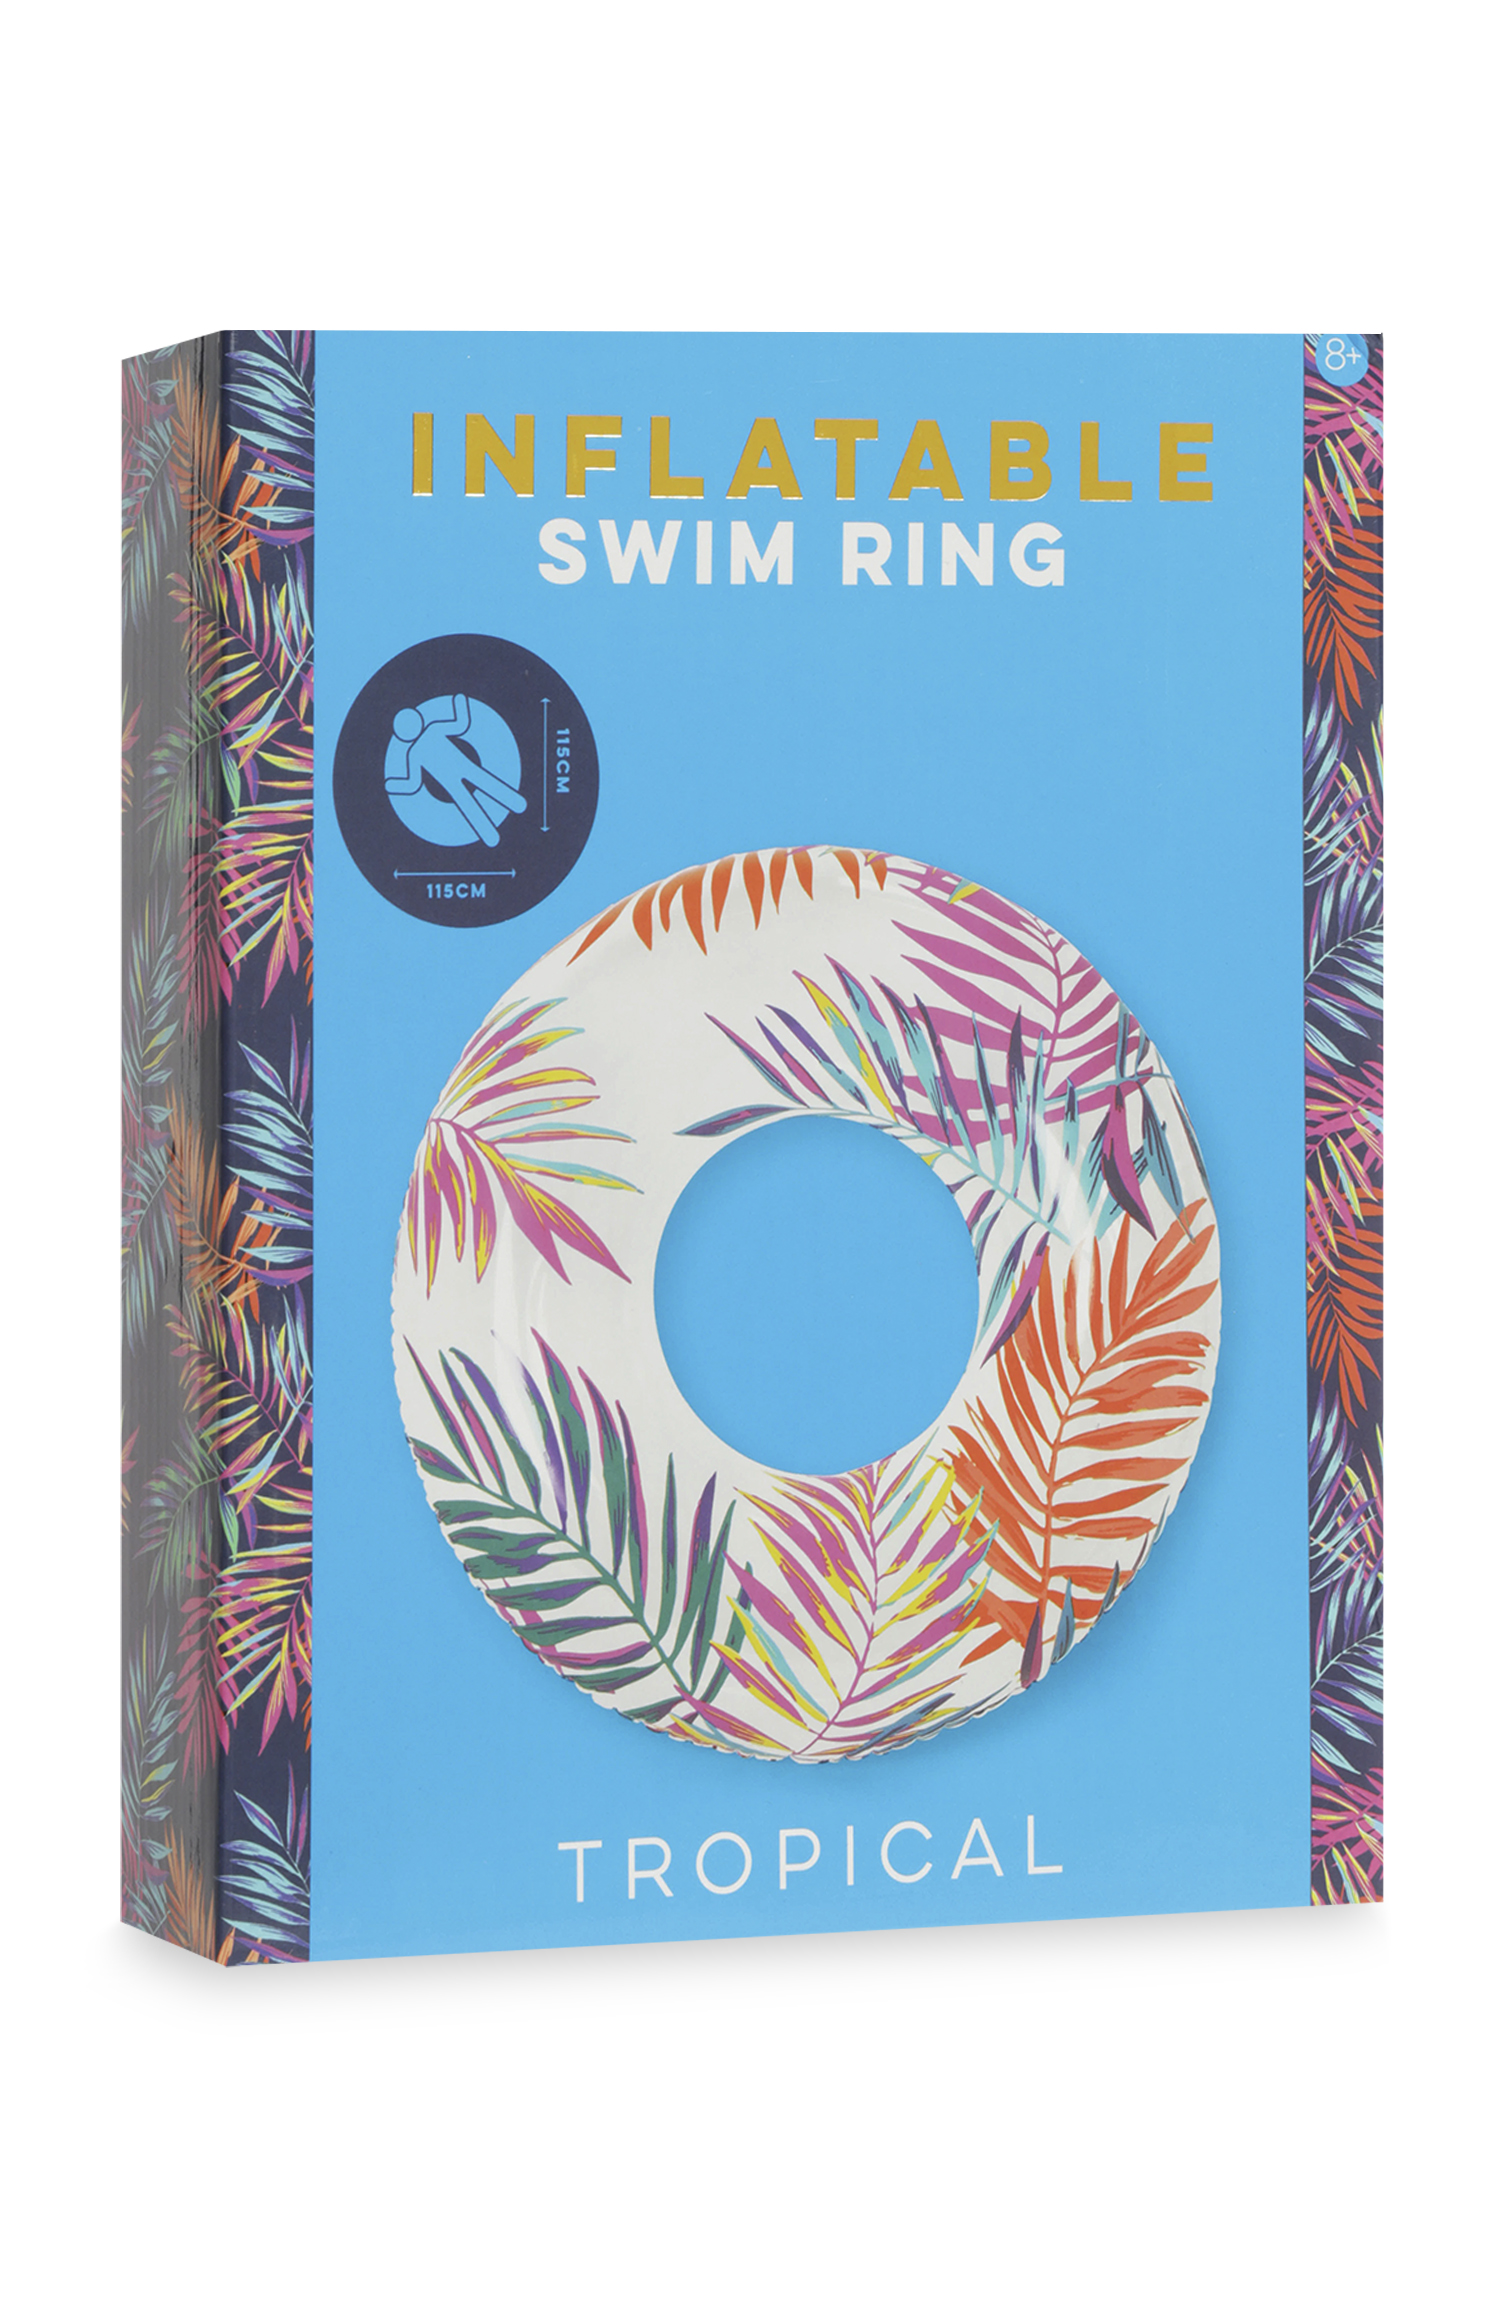 Kimball-3288103-Tropical Inflatable-WK24-Grade Unknown-€7,£5